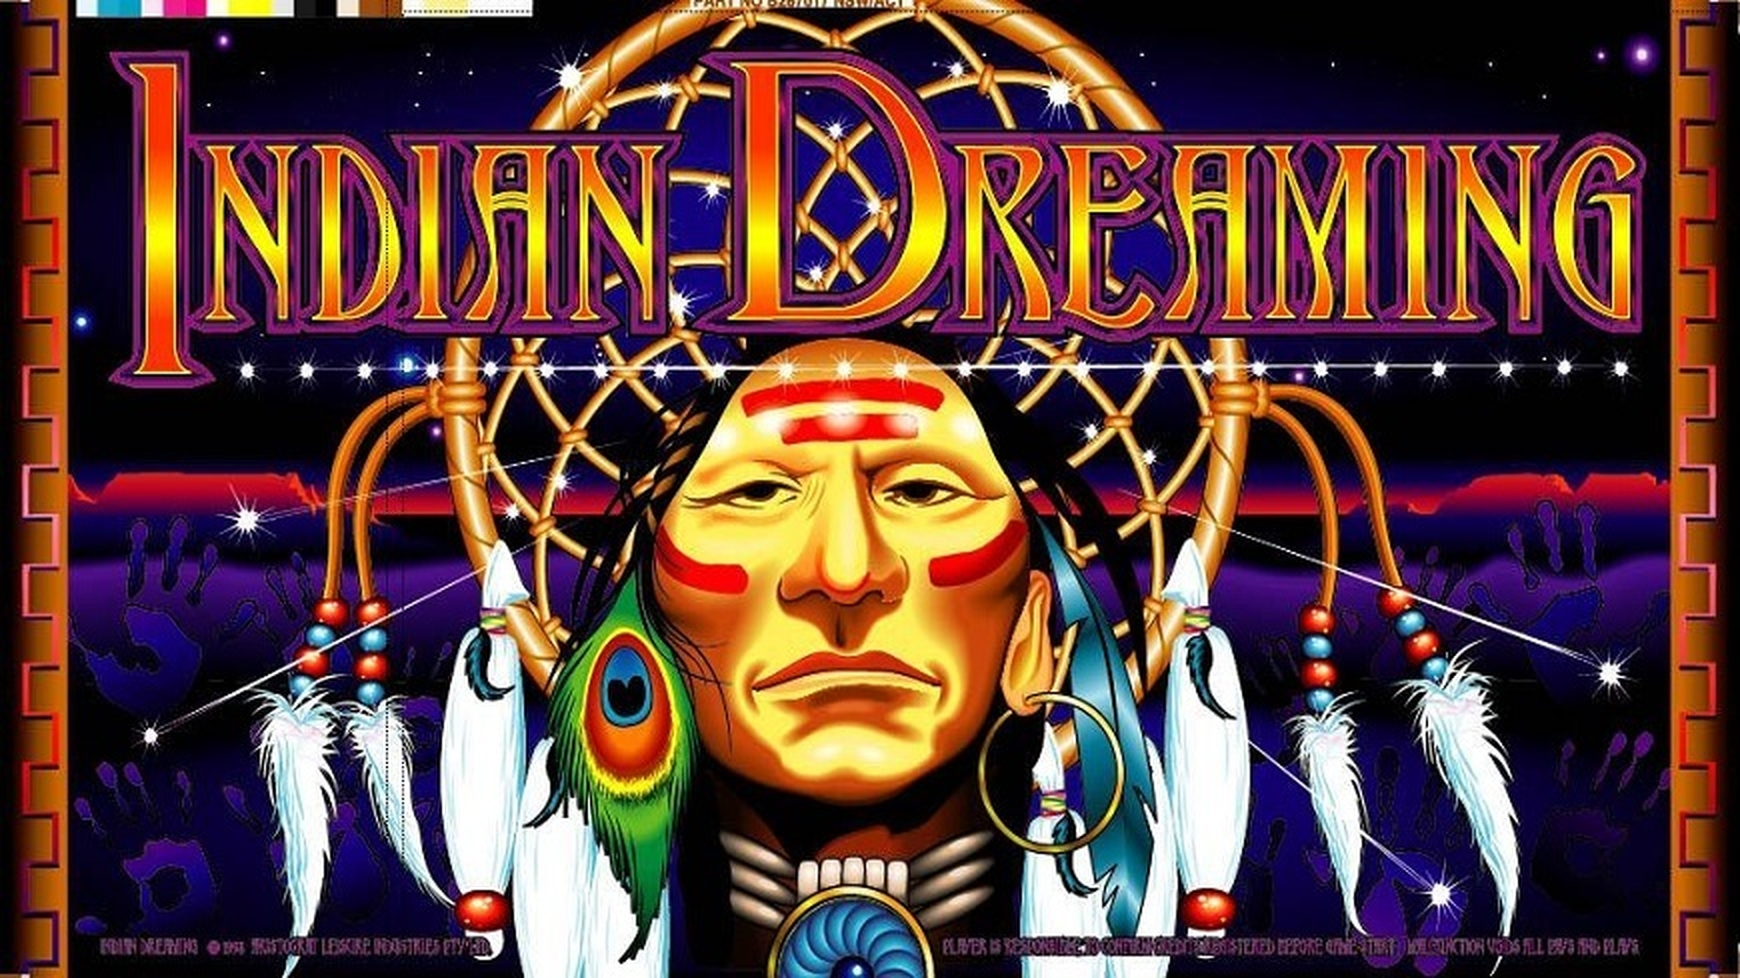 The Indian Dreaming Online Slot Demo Game by Aristocrat